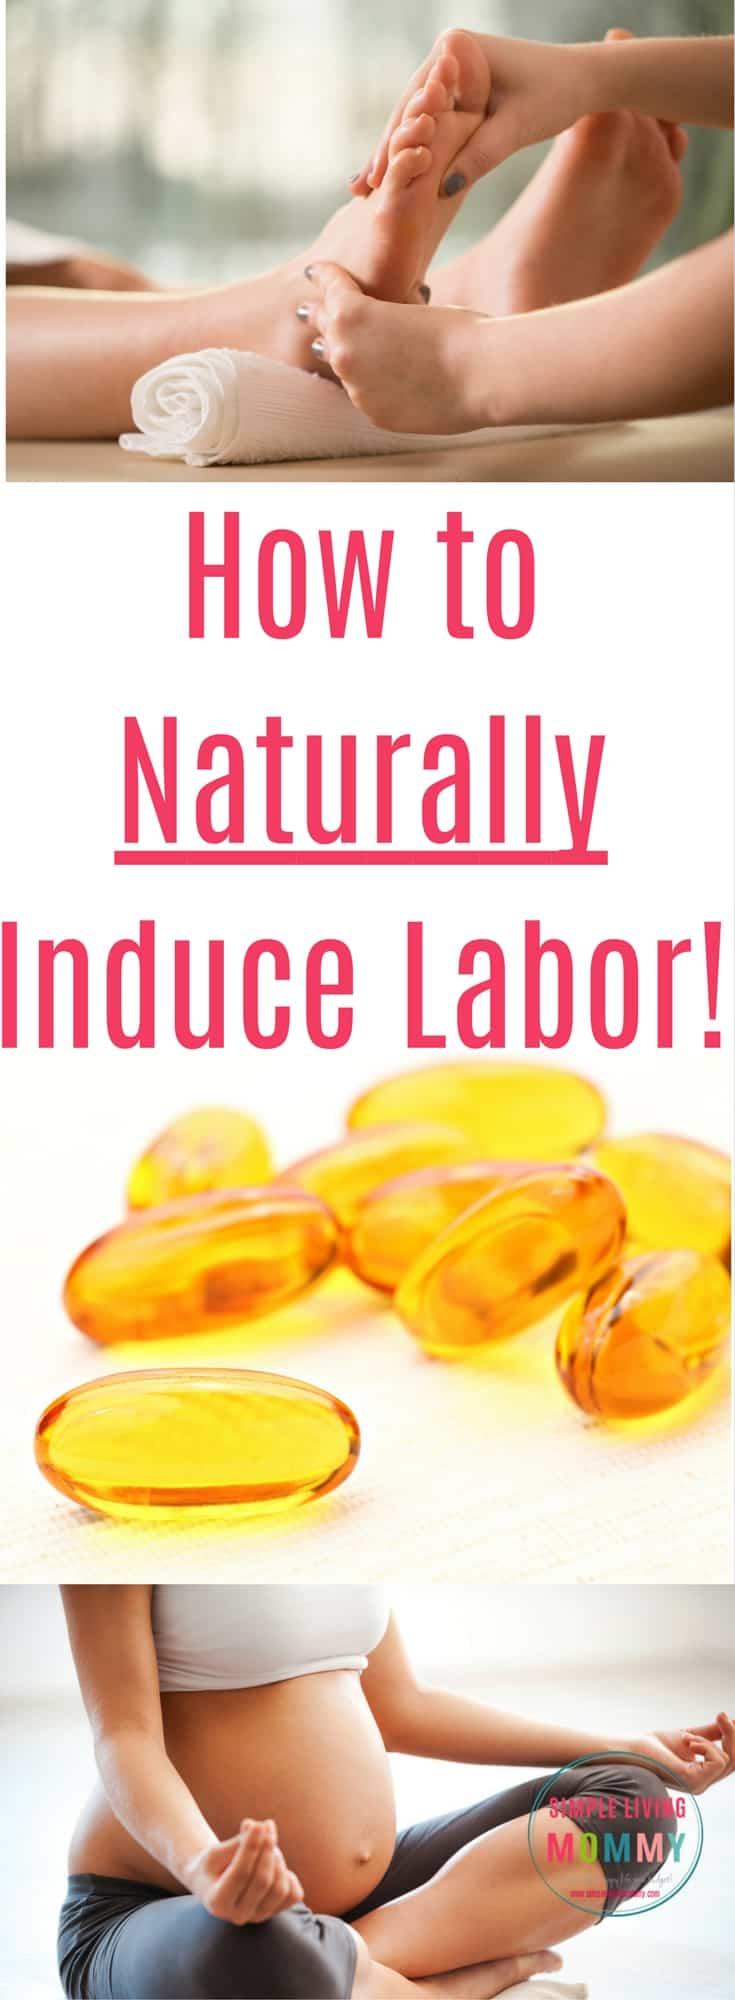 """Here Are Some Other Things You Can Try To Naturally Induce Labor After Your  Doctor Gives You The €�goahead"""":"""